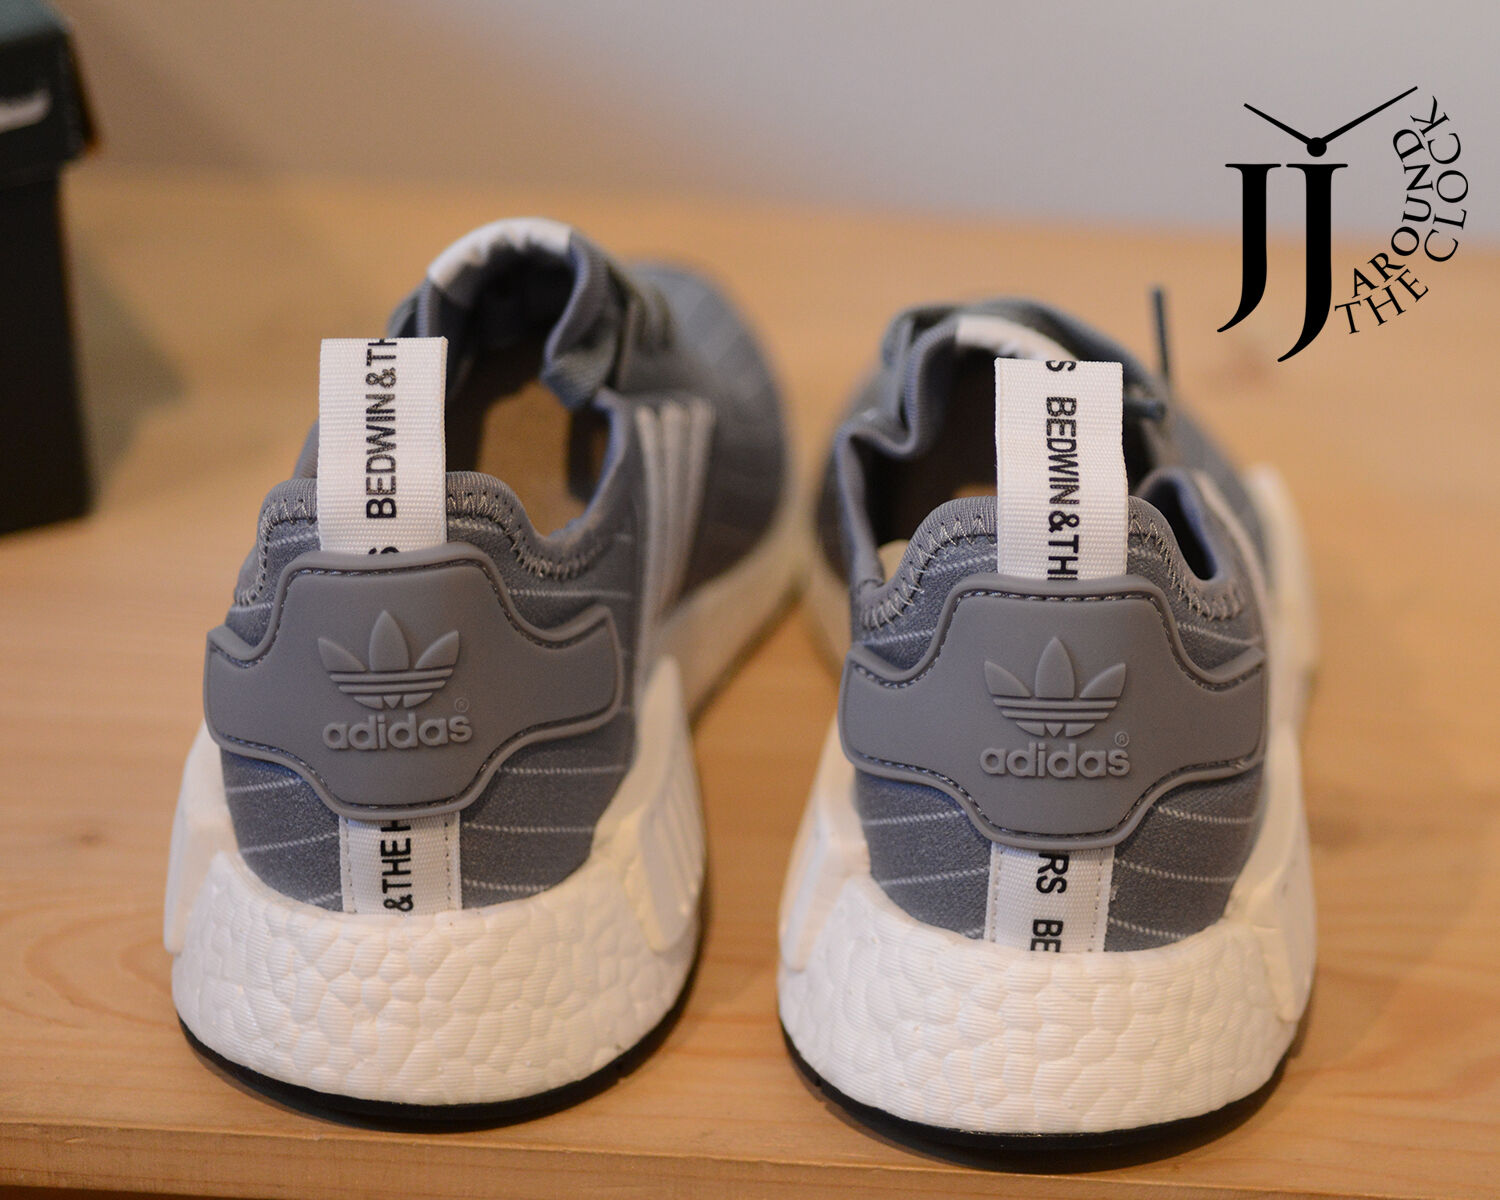 b0bcbb09d ... NEW ADIDAS NMD NMD NMD R1 BEDWIN   THE HEARTBREAKERS BB3123 GREY 5.0 US  3f44a9 ...